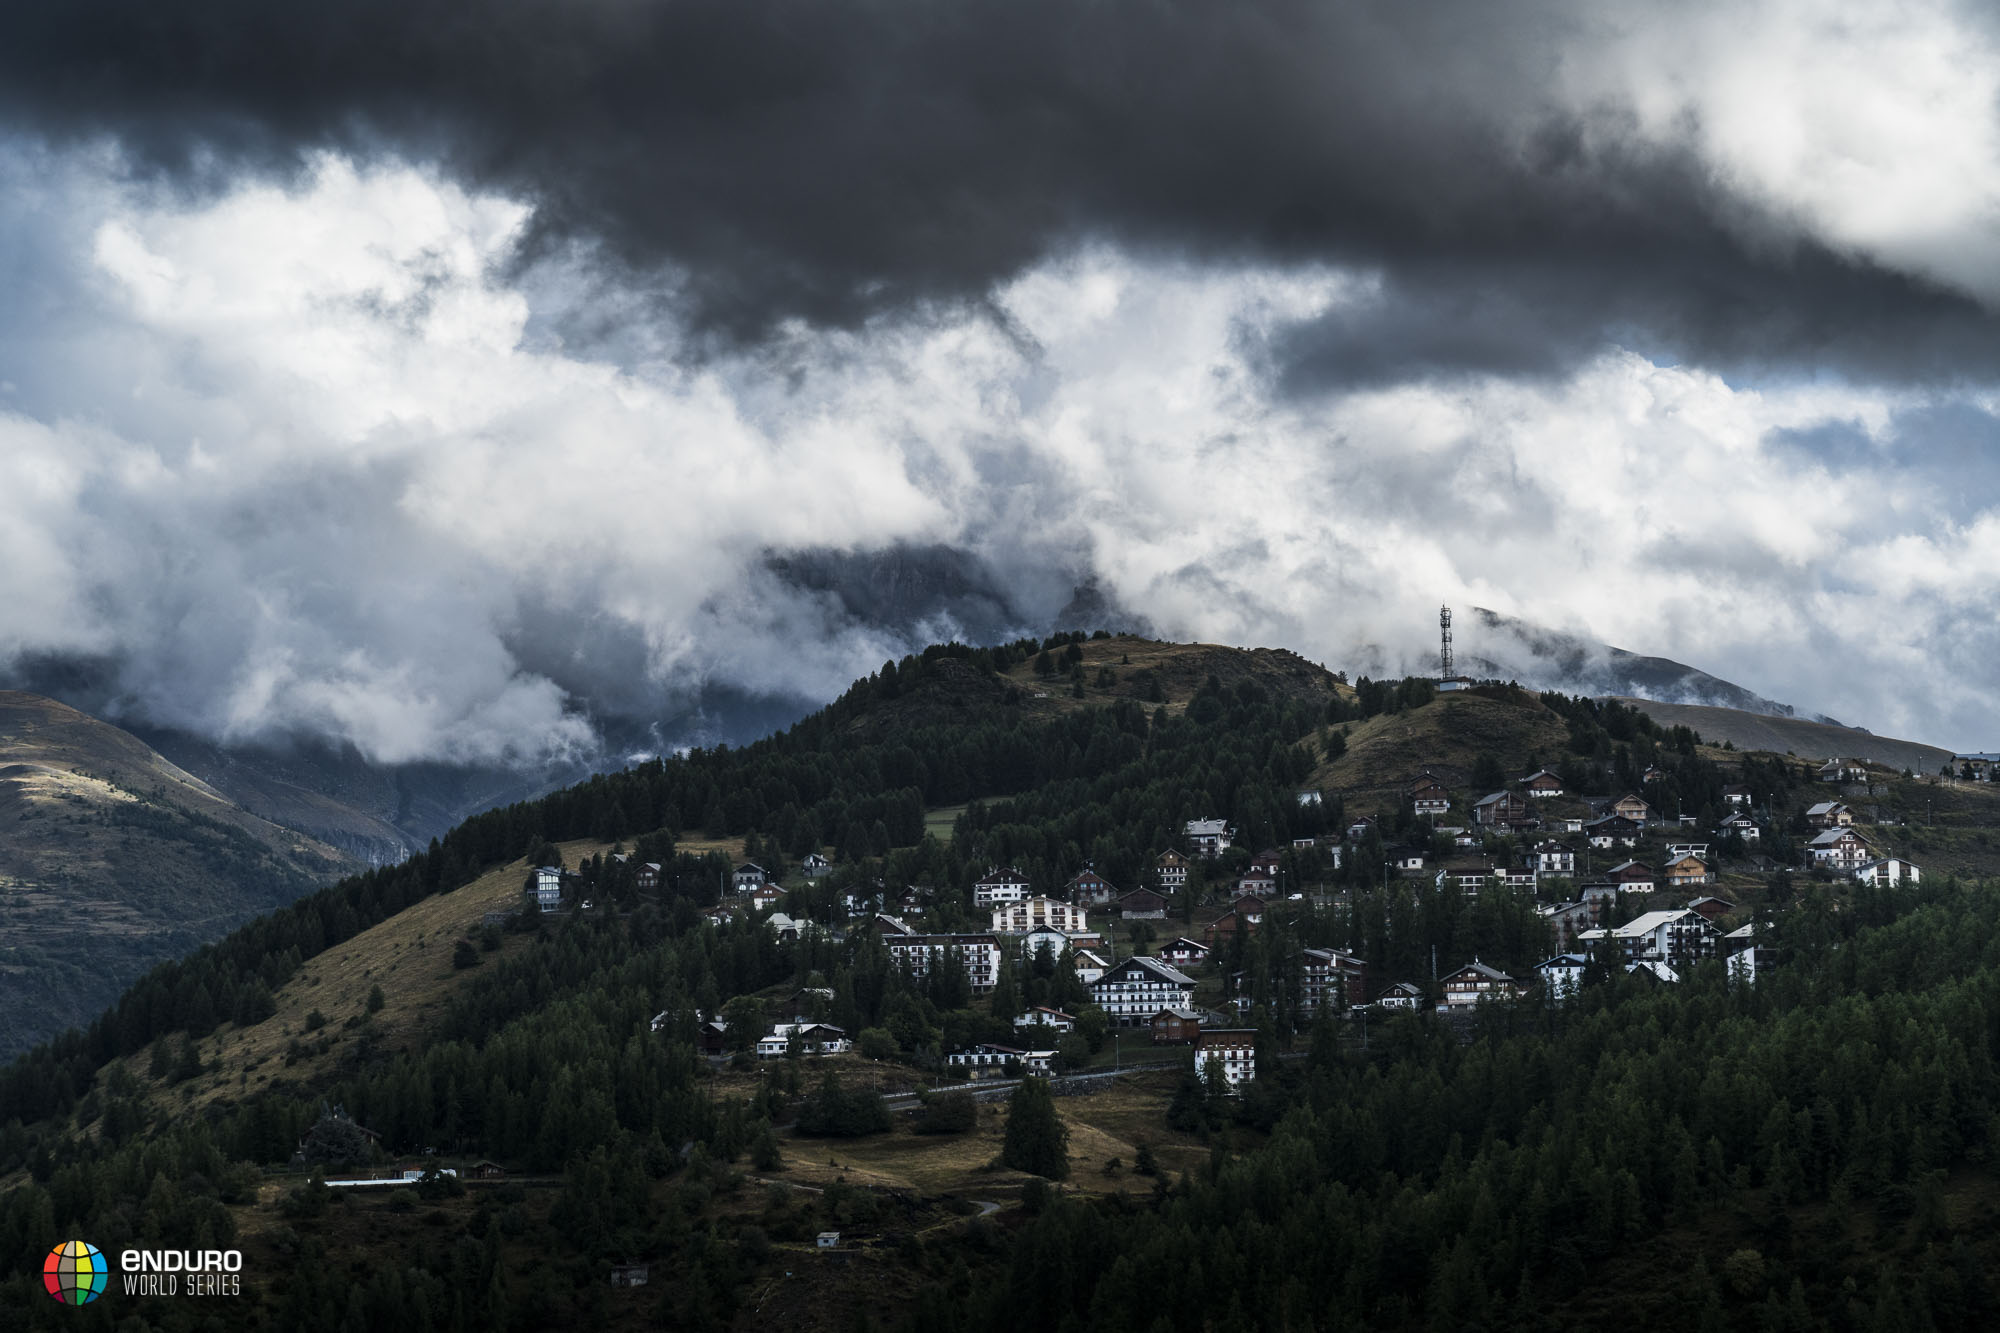 The view of Valberg was revealed after the cloud lifted from the storm the night before